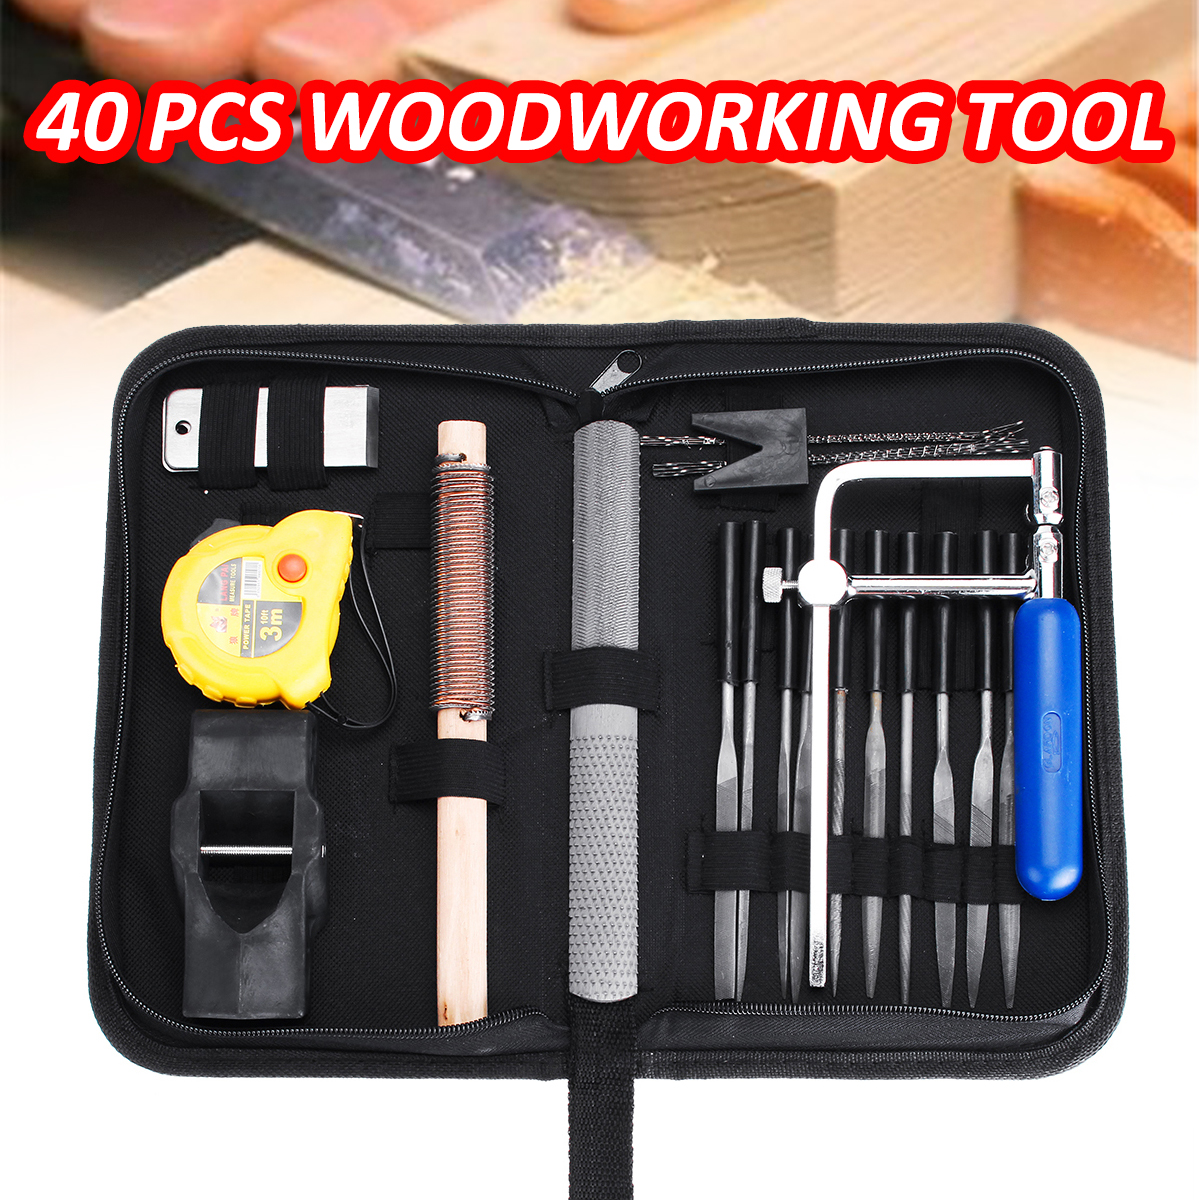 40Pcs/Set Toolkit Metal Needle Files Planer Saw Hand Tool Sets For Home DIY Folder Hobby Wood Woodworking Hand Tools ноутбук asus rog gl552vx cn096t 90nb0aw3 m01080 intel core i7 6700hq 2 6 ghz 16384mb 2000gb 128gb ssd dvd rw nvidia geforce gtx 950m 4096mb wi fi cam 15 6 1920x1080 windows 10 64 bit